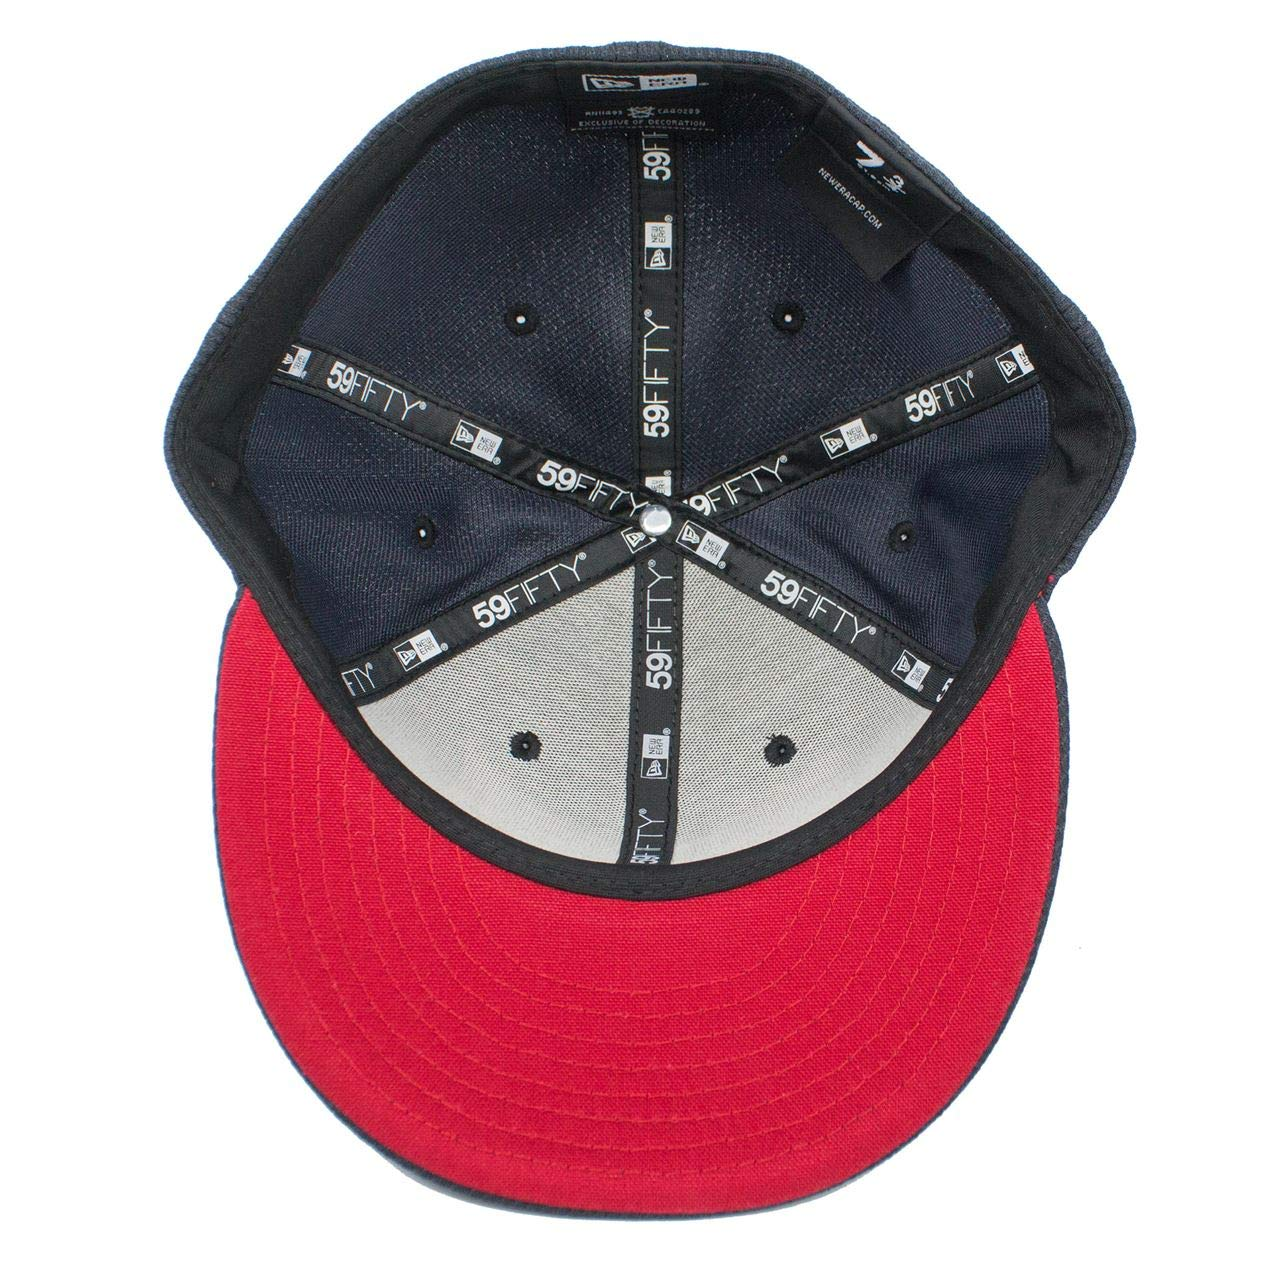 c3acaffe New Era Captain Marvel Navy Scarlet 5950 Fitted Hat at Amazon Men's  Clothing store: